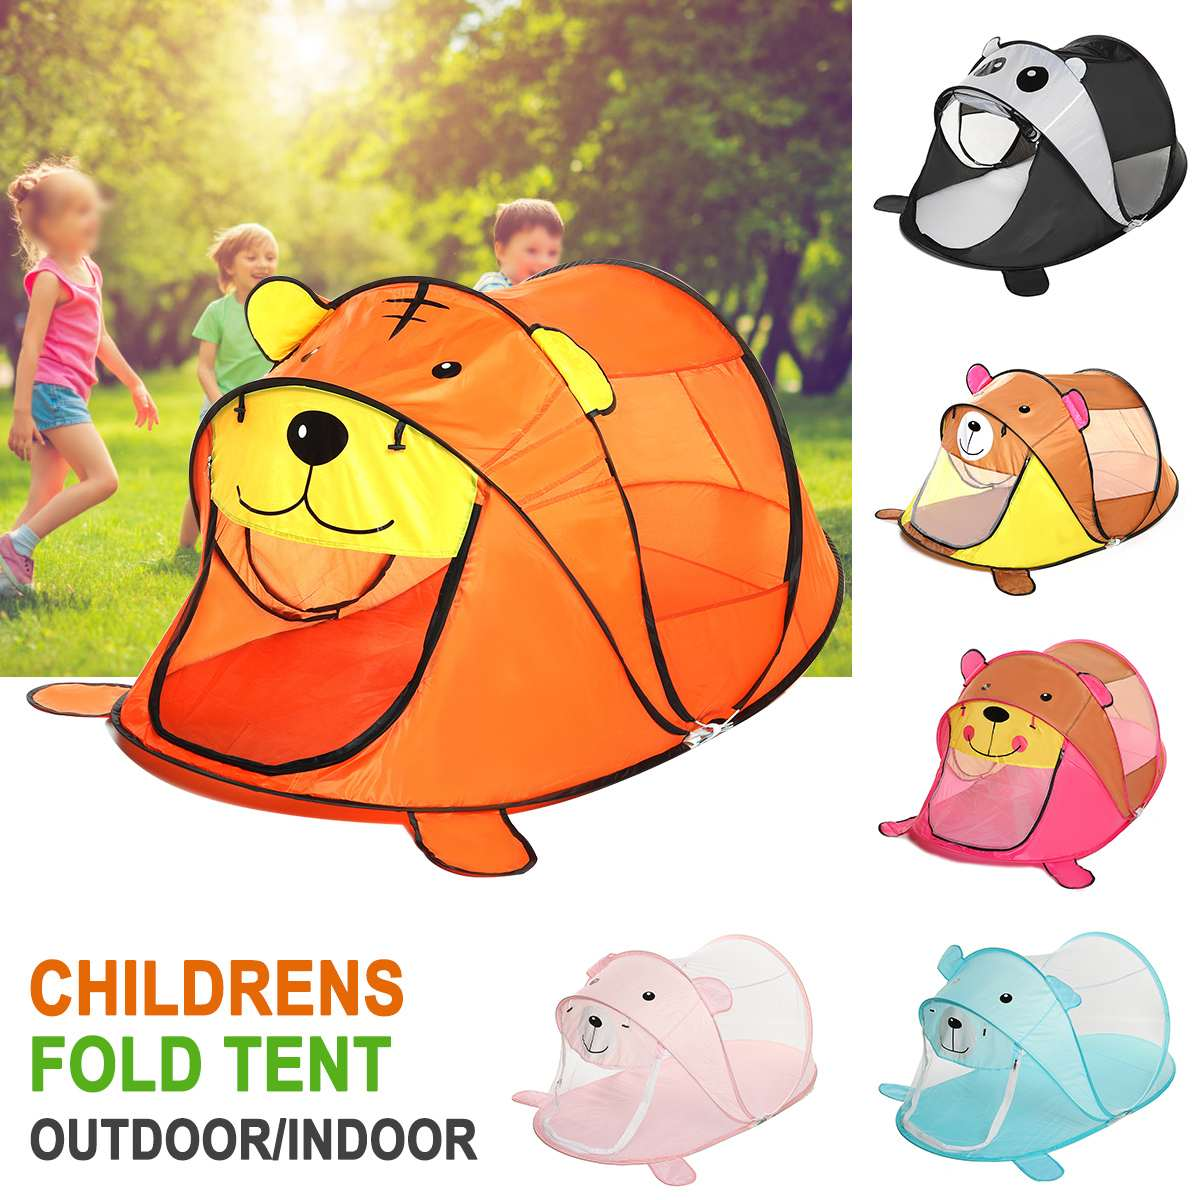 Portable Tiger Children's Tent Cartoon Animal Kids Play House Outdoors Large Toy Tent Indoor Nets Baby Ball Pool Toys Sea Ball